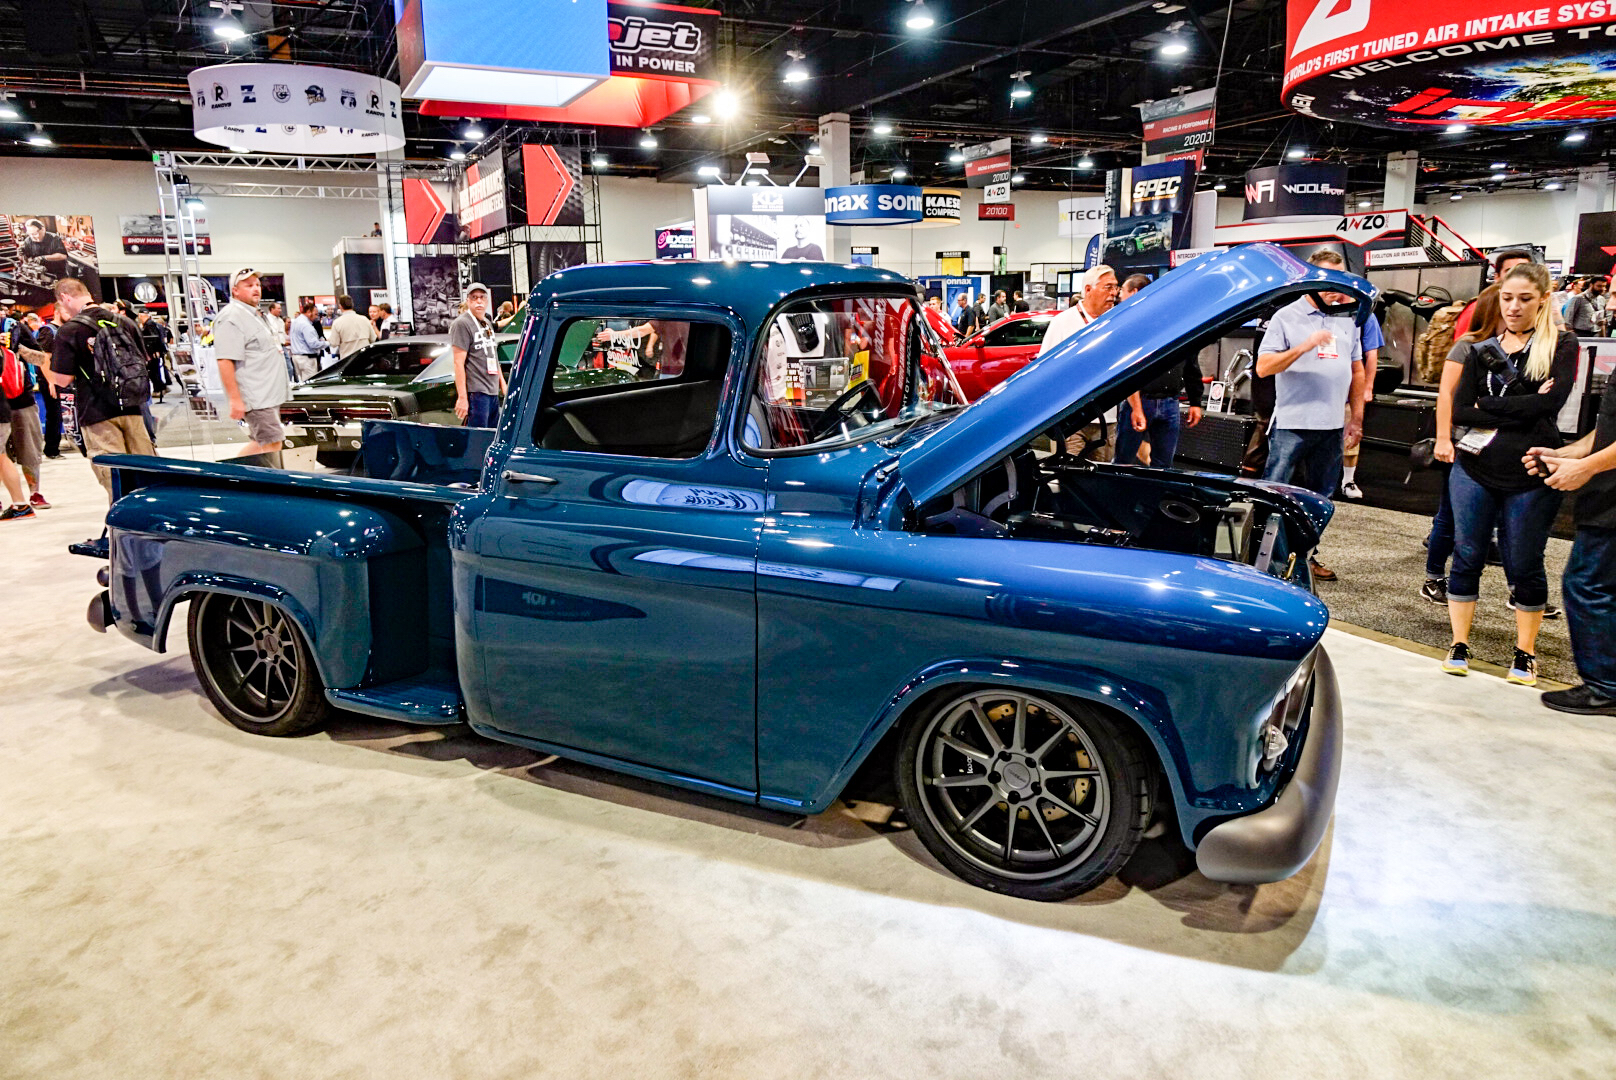 custom 1957 Chevy pickup profile